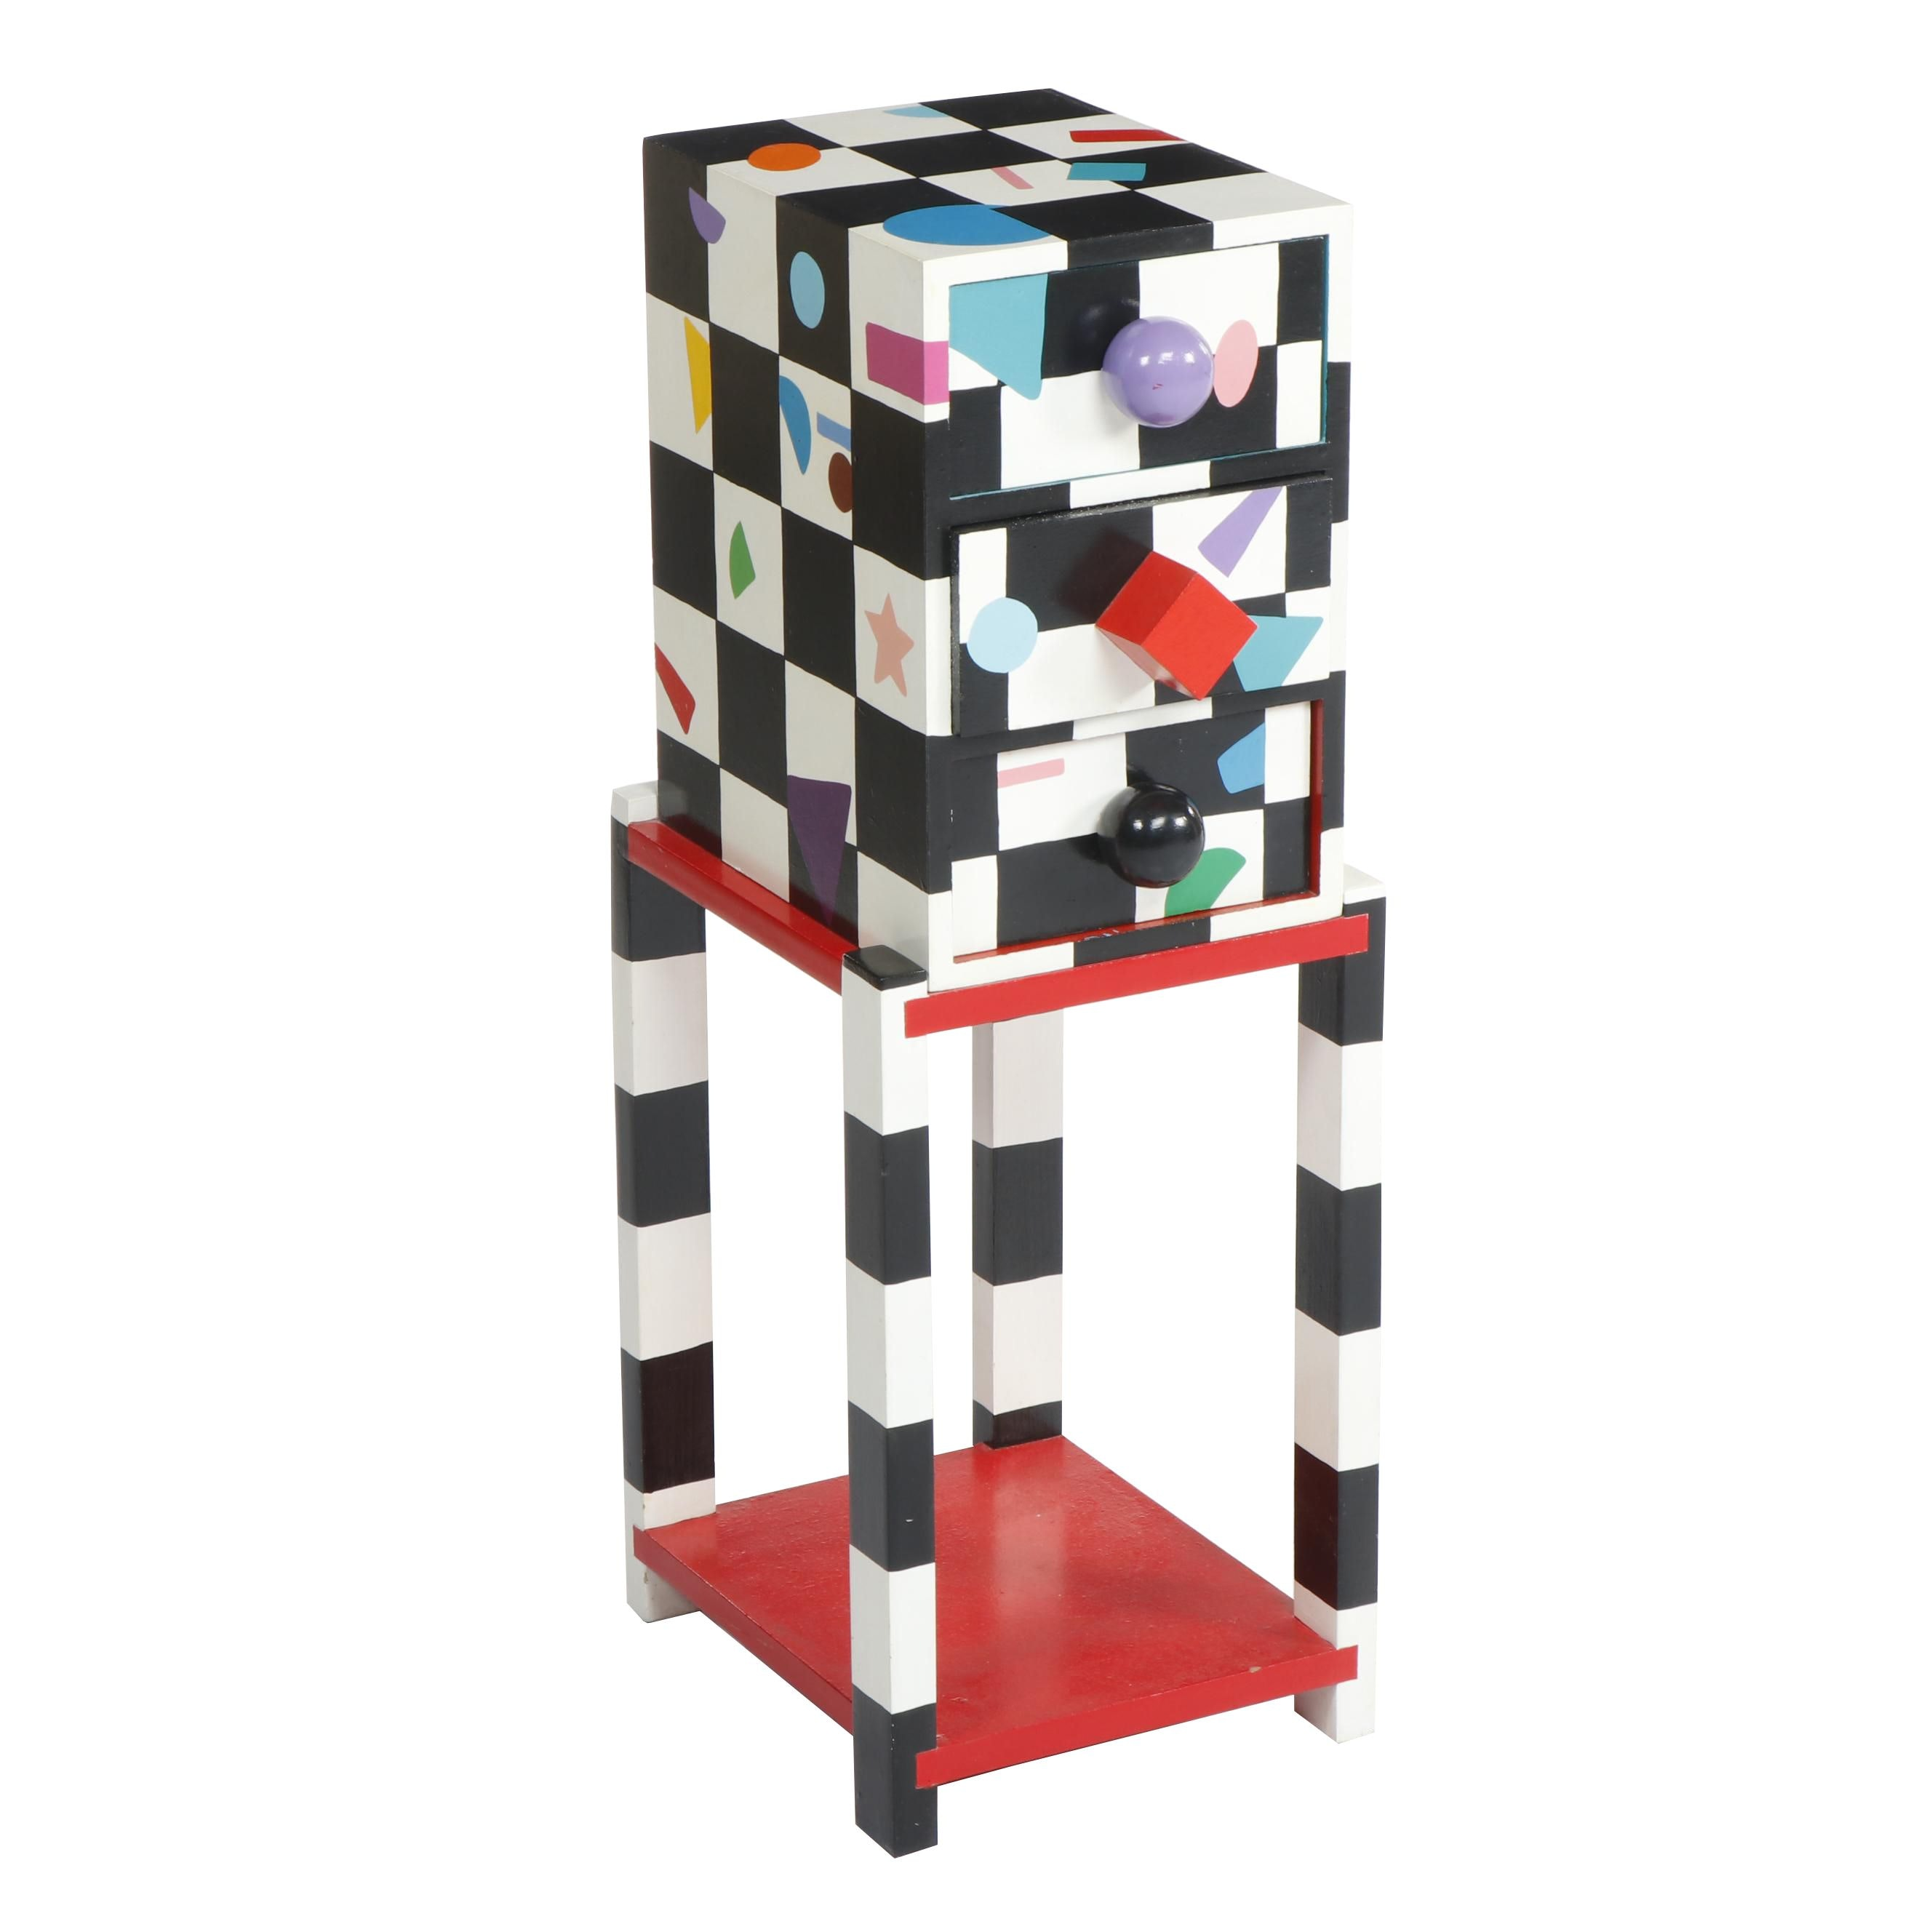 Memphis Style Colorful Painted Geometric Shape Side Table With Drawers, C. 1980s